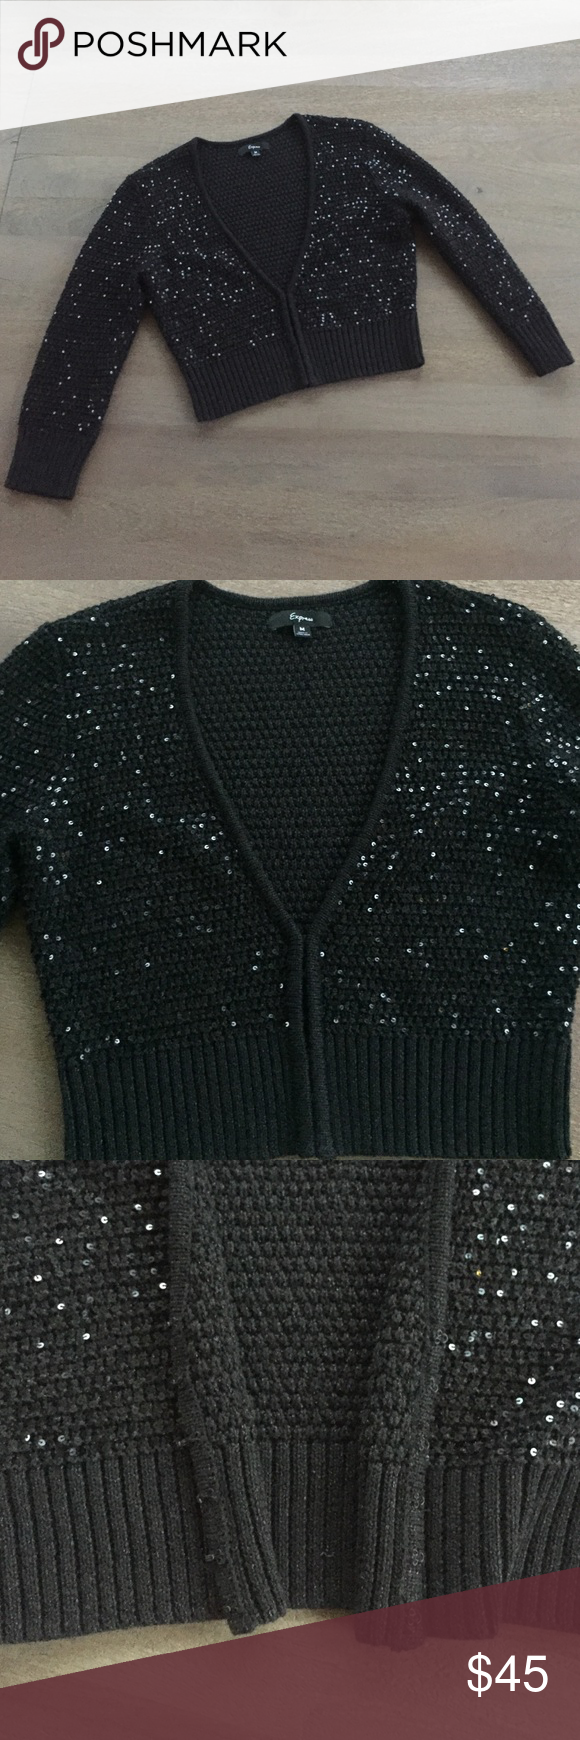 Express black sequin cropped cardigan sweater